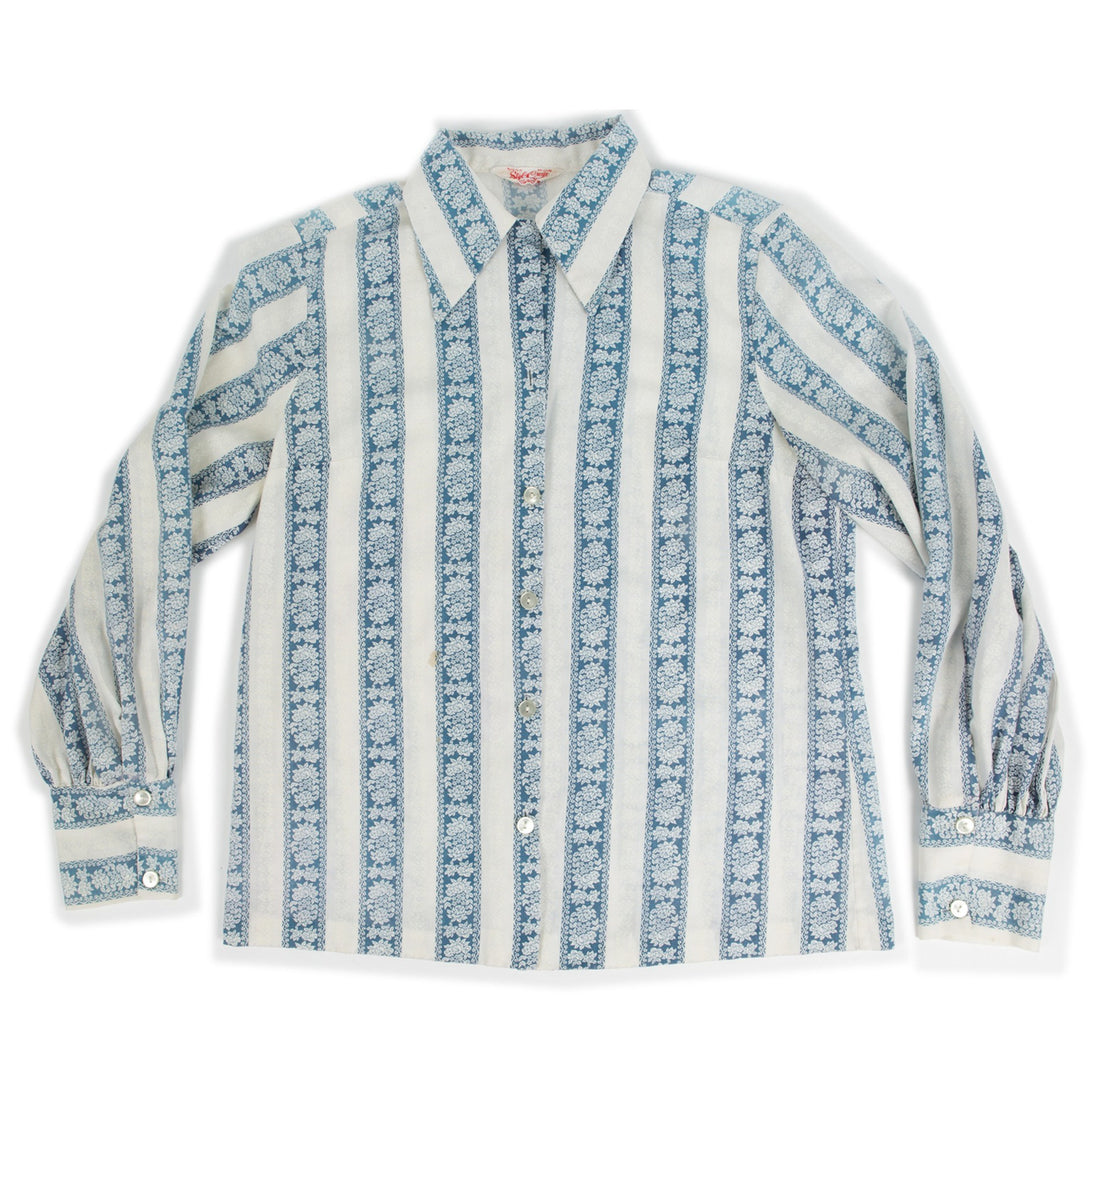 Vintage 70's Style Craft Button Up Shirt